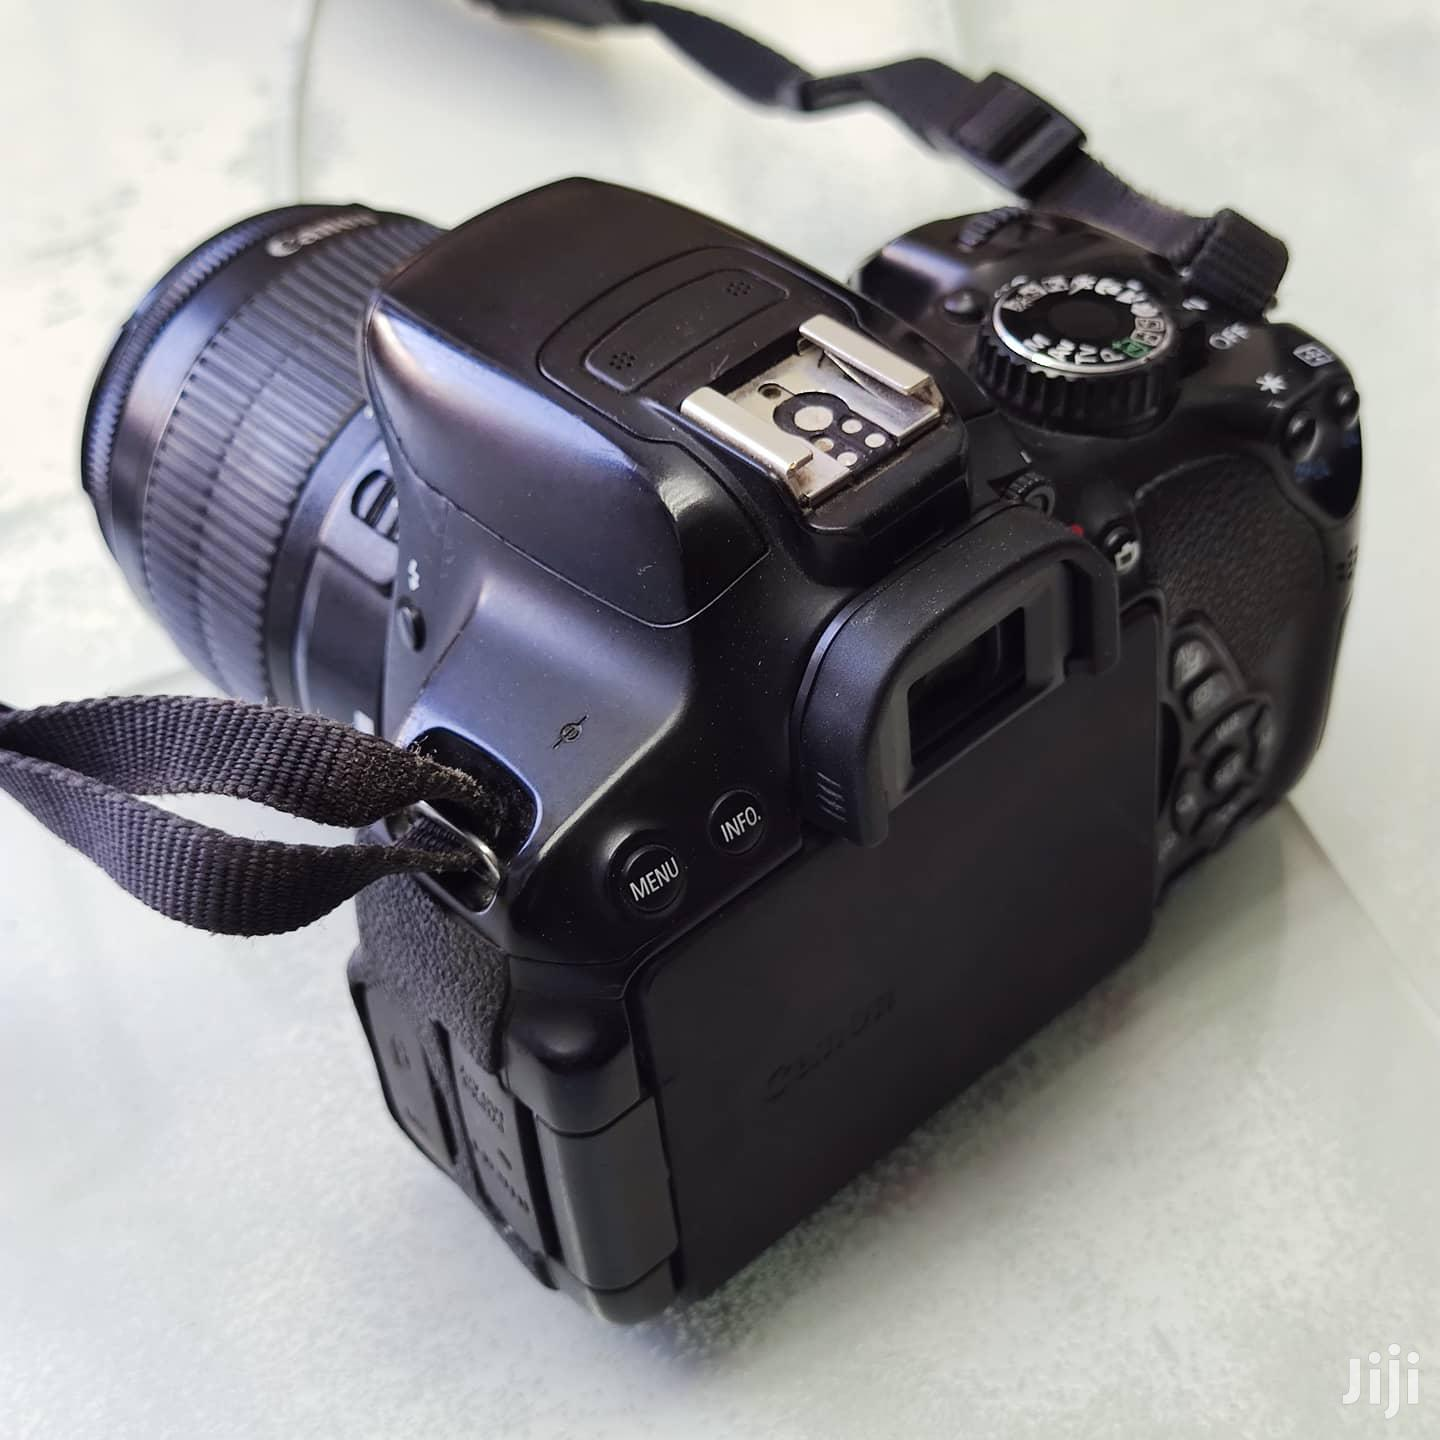 Archive: Canon EOS 650D Digital SLR Camera